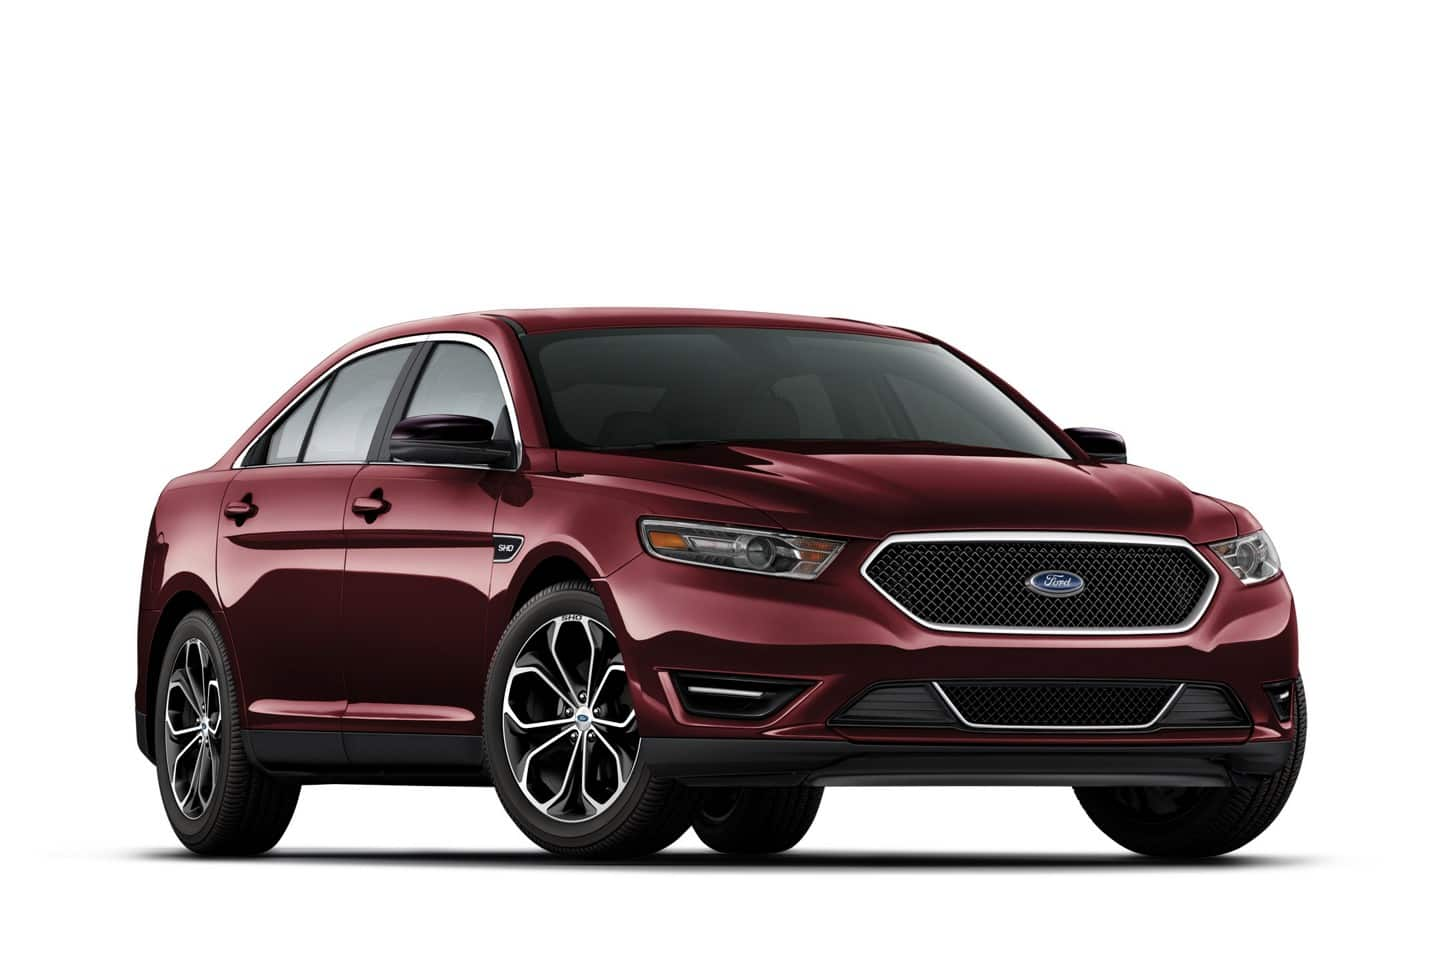 59 Great 2019 Ford Taurus Sho Specs Speed Test for 2019 Ford Taurus Sho Specs